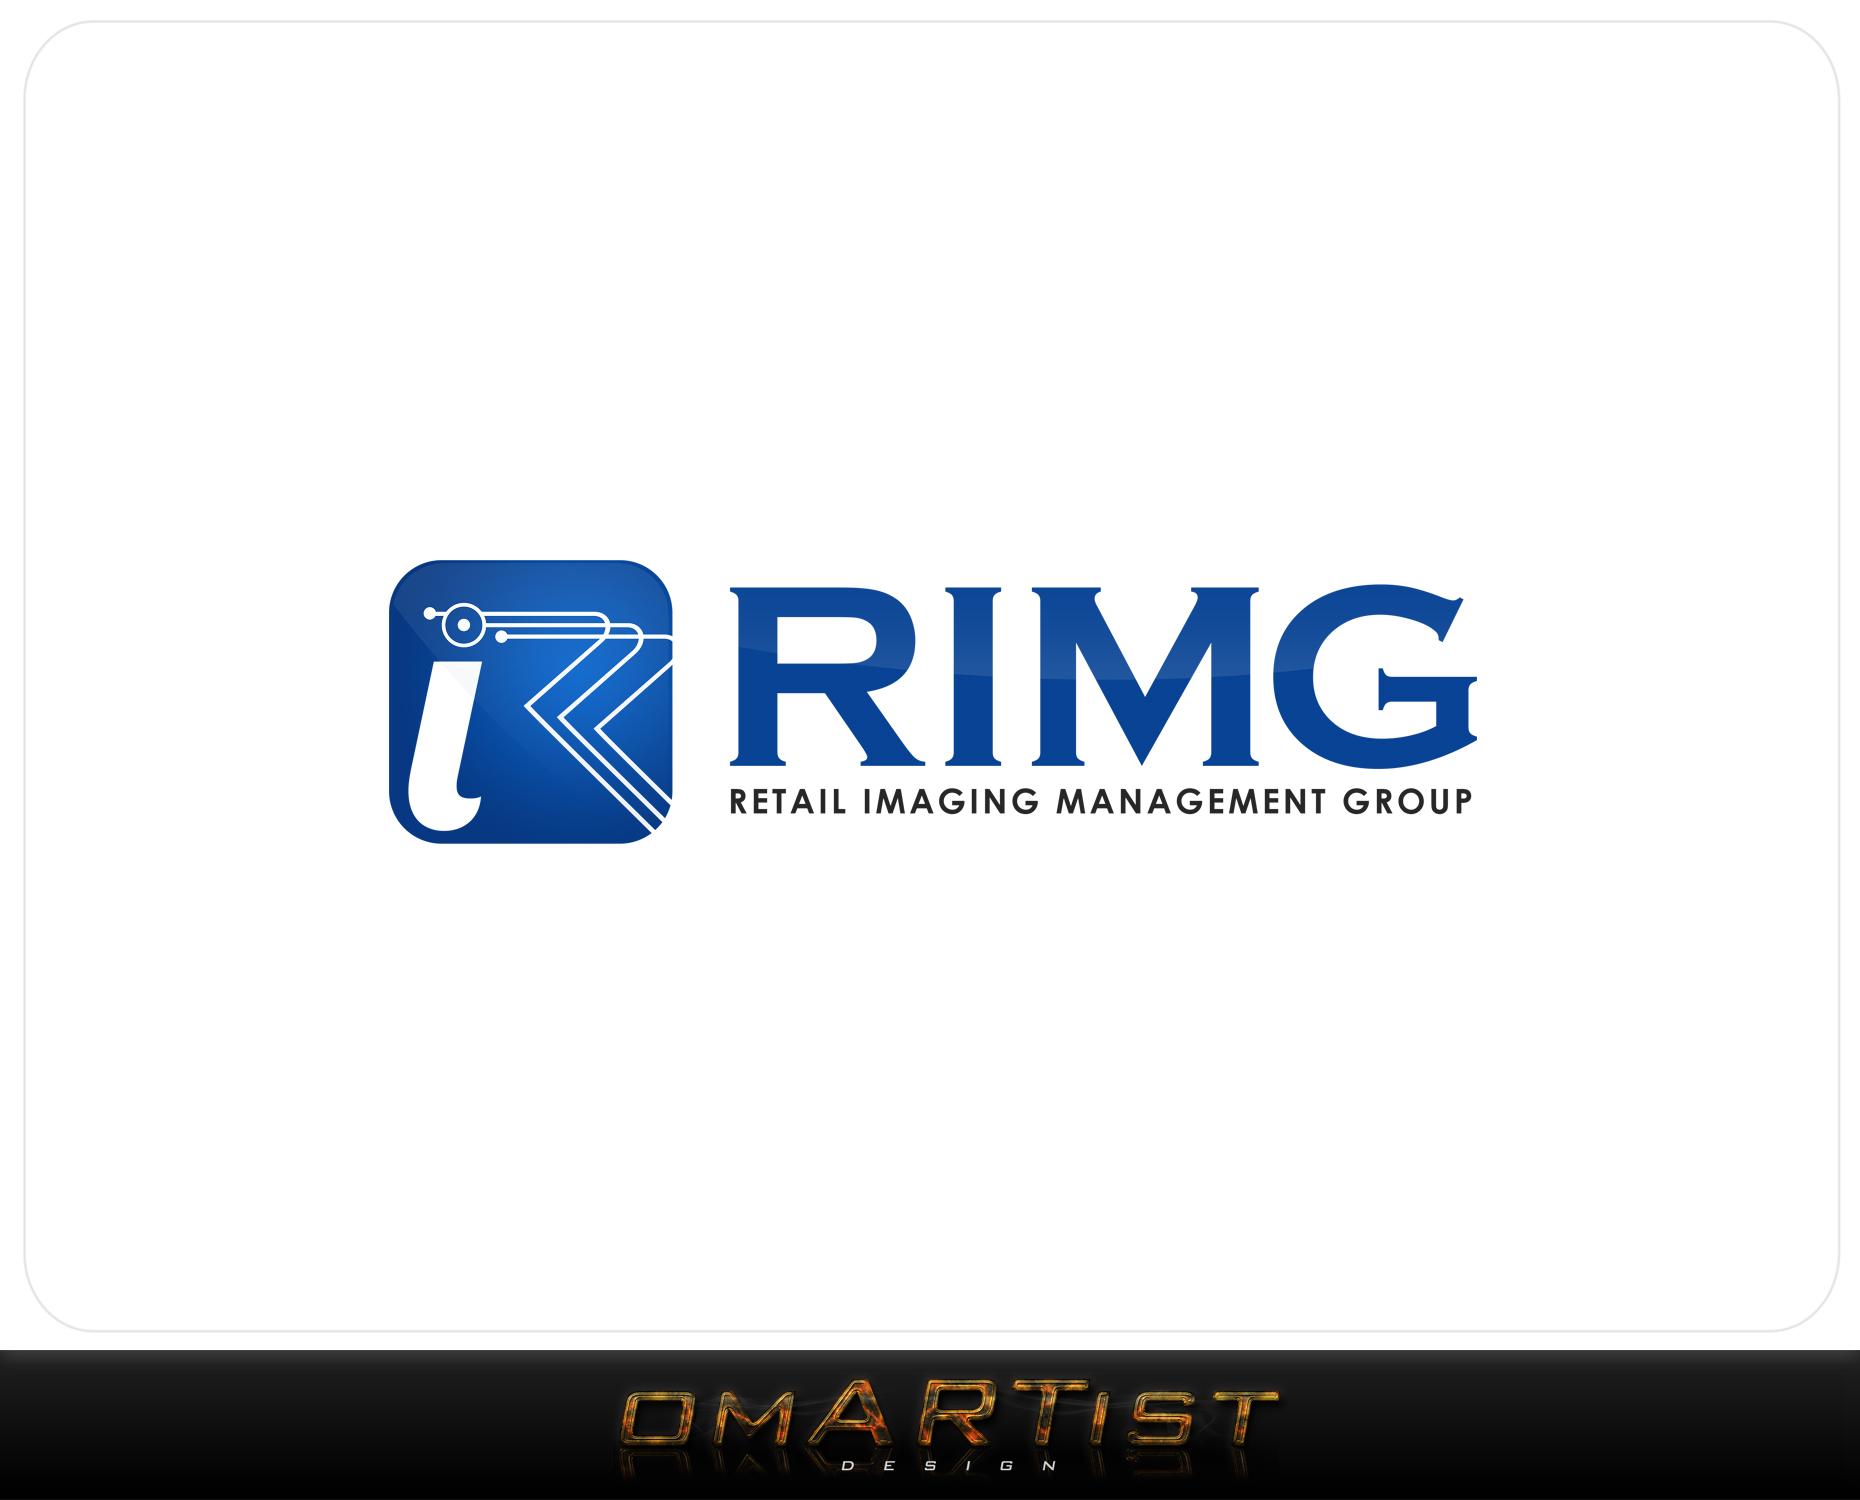 Logo Design by omARTist - Entry No. 117 in the Logo Design Contest Creative Logo Design for Retail Imaging Management Group (R.I.M.G.).